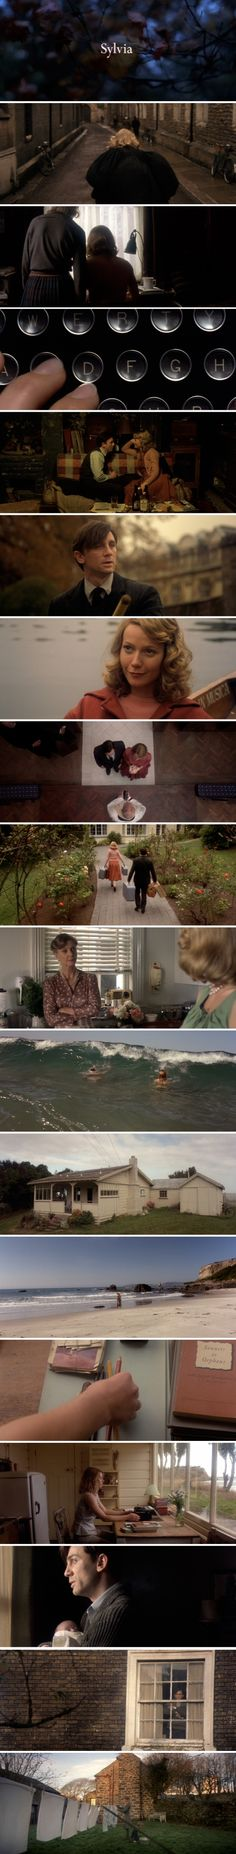 Sylvia (2003) Story of the relationship between the poets Ted Hughes and Sylvia Plath.